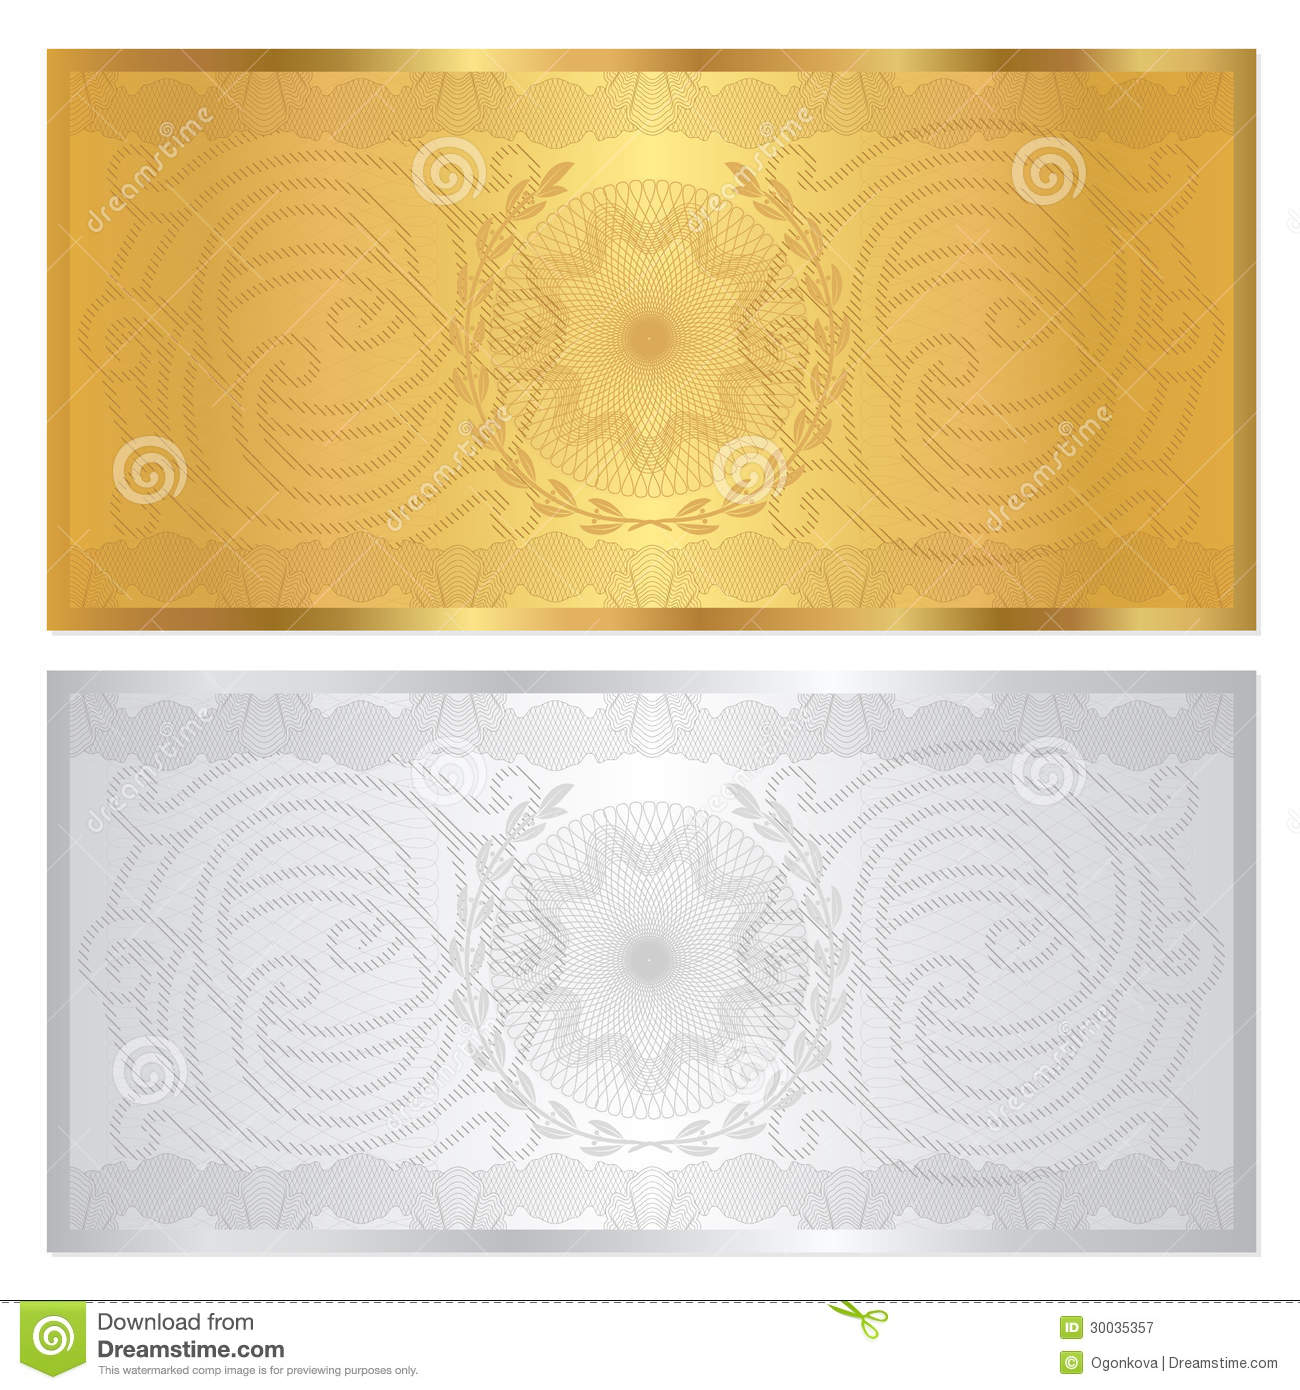 Voucher template with guilloche pattern (watermarks) and border. This ...